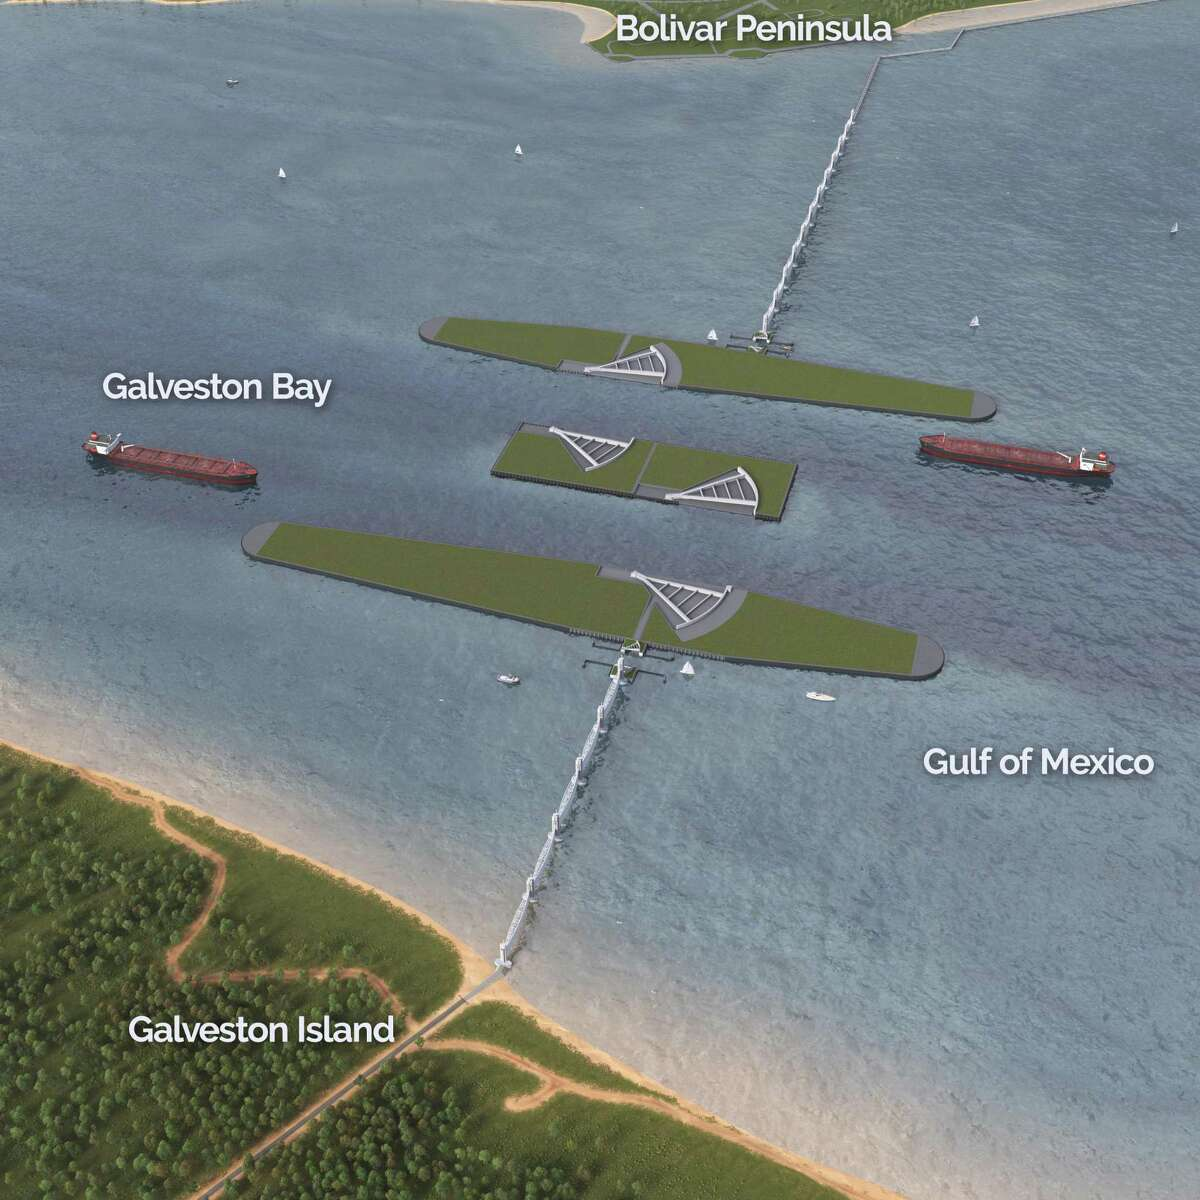 An aerial view of navigation gates at the mouth of Galveston Bay, proposed by the U.S. Army Corps of Engineers as part of the coastal barrier system for southeast Texas.